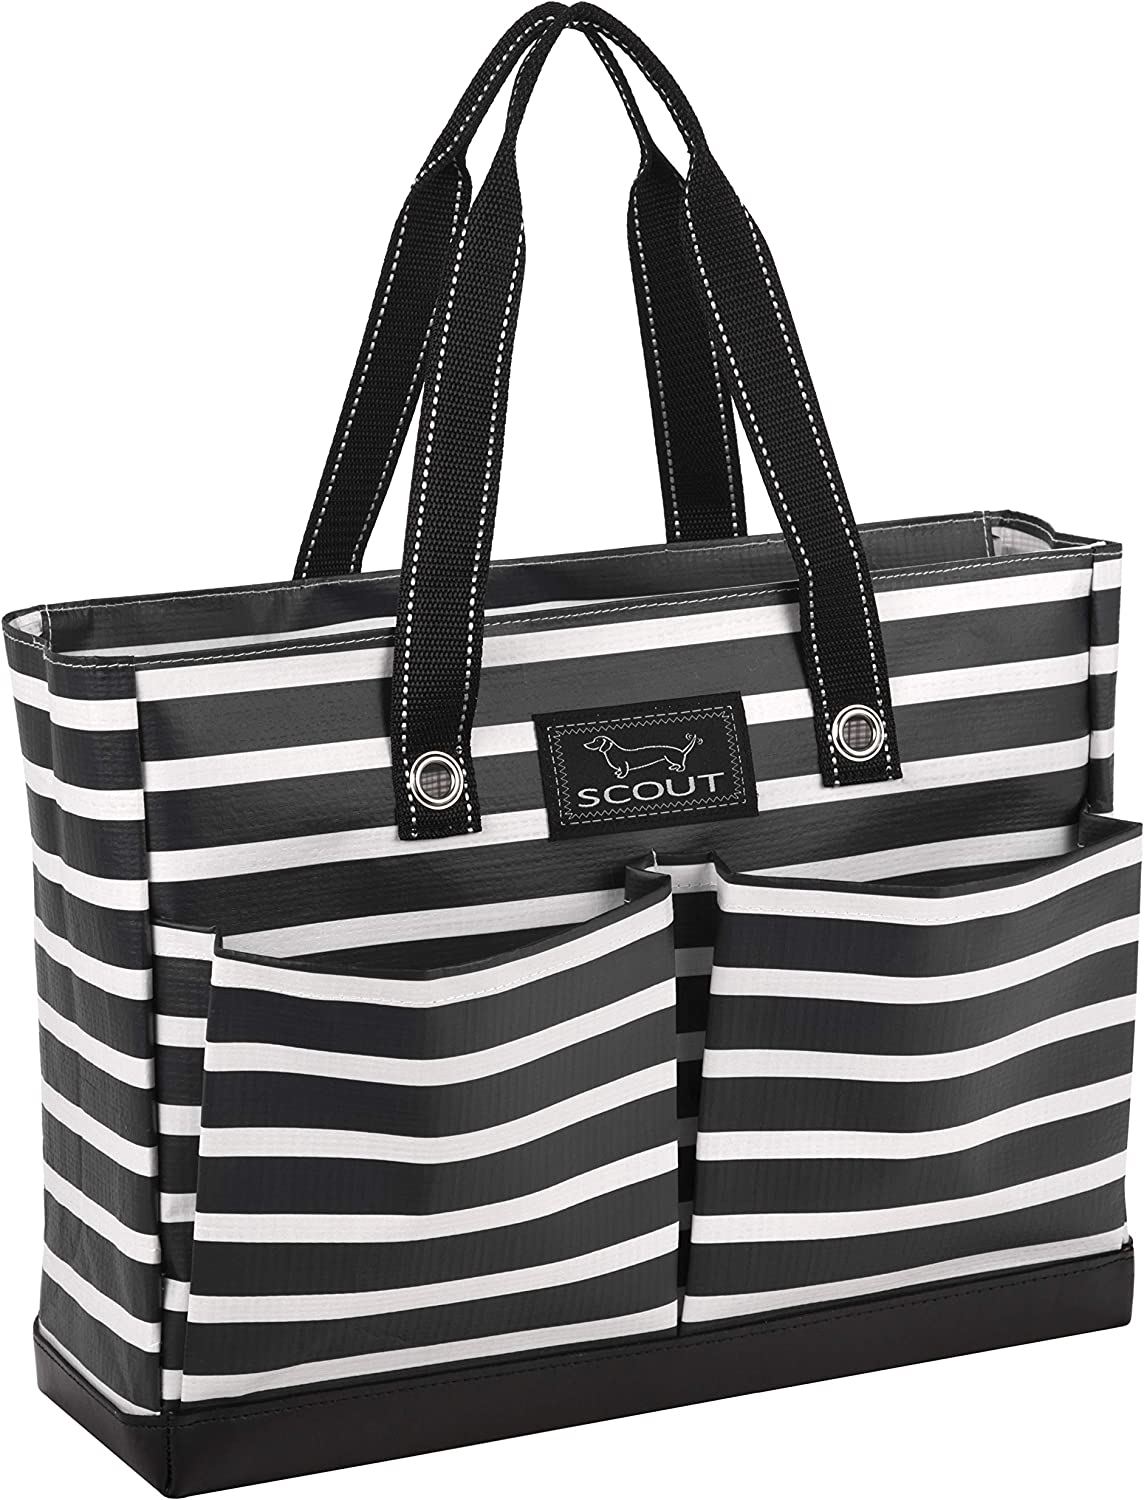 SCOUT Uptown Girl Tote Bag, Lightweight Utility Tote Bag with 4 Exterior Pockets